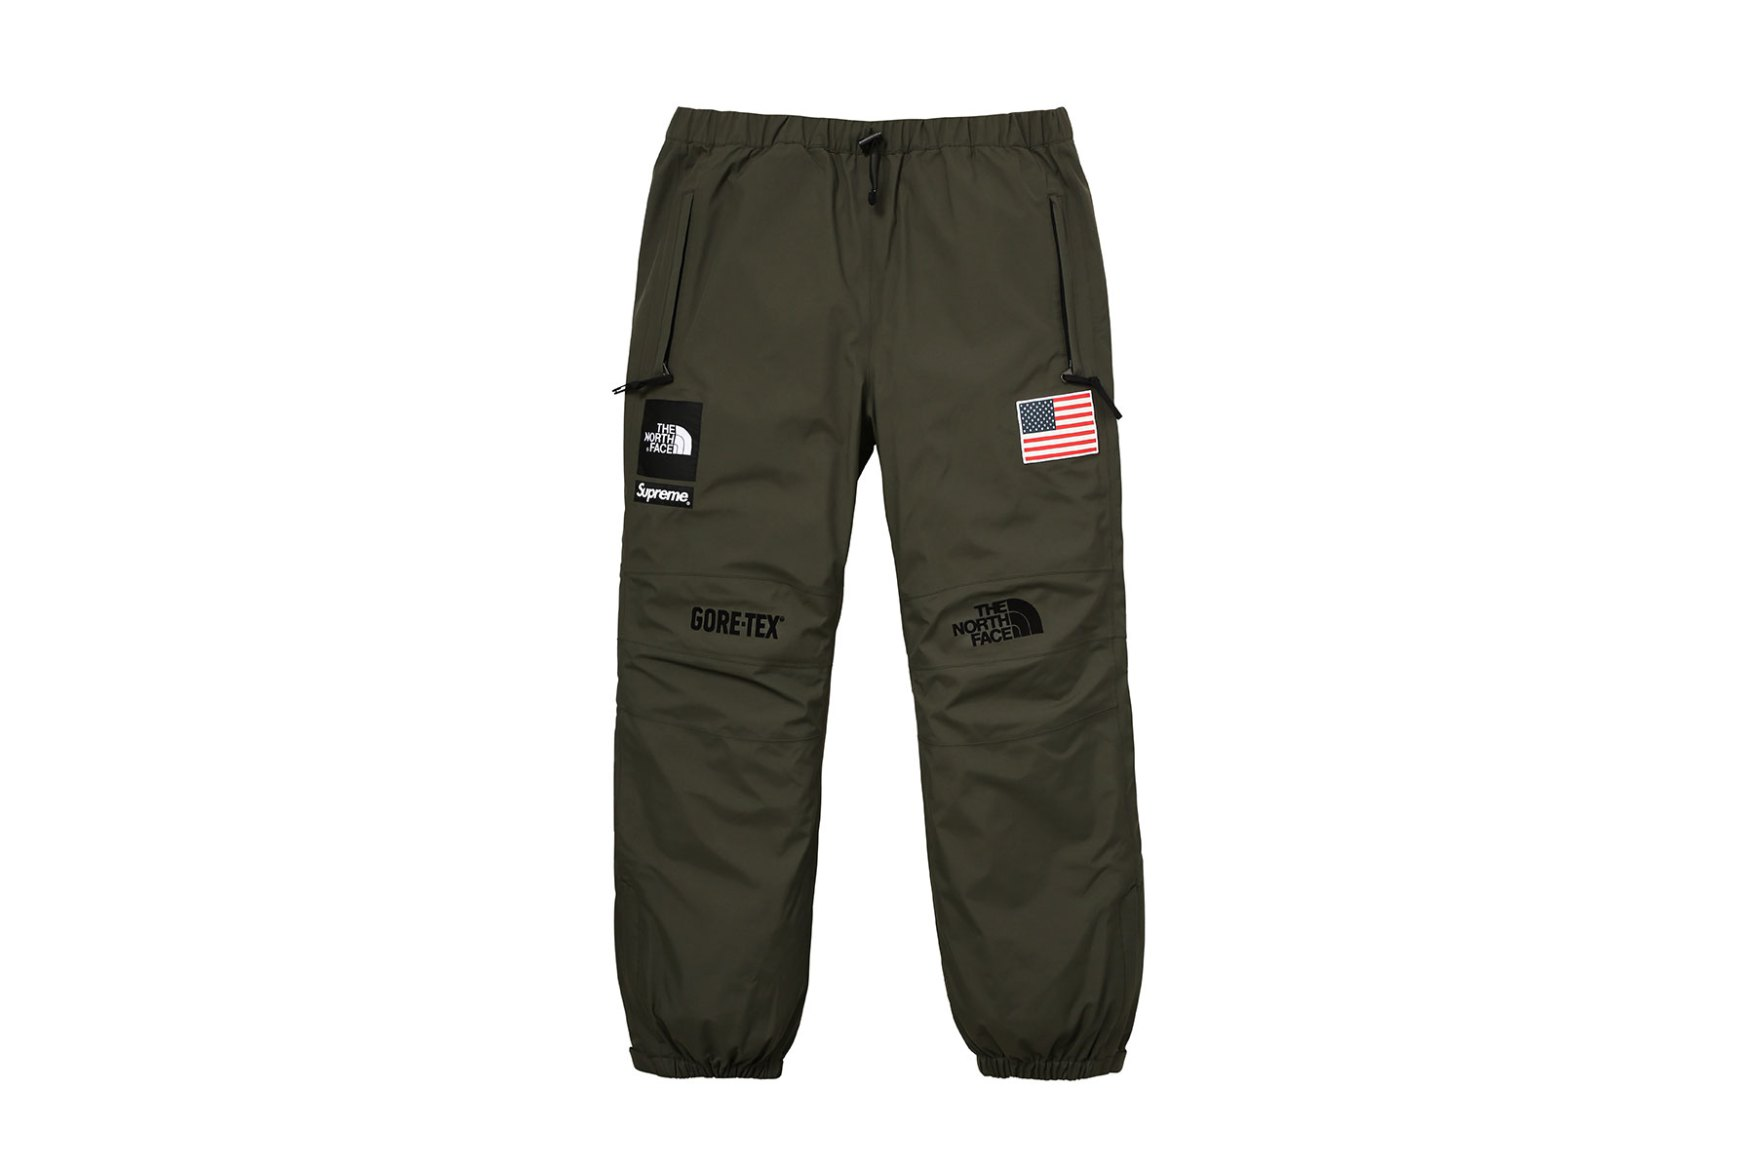 supreme-the-north-face-2017-spring-summer-olive-gore-tex-pant-18